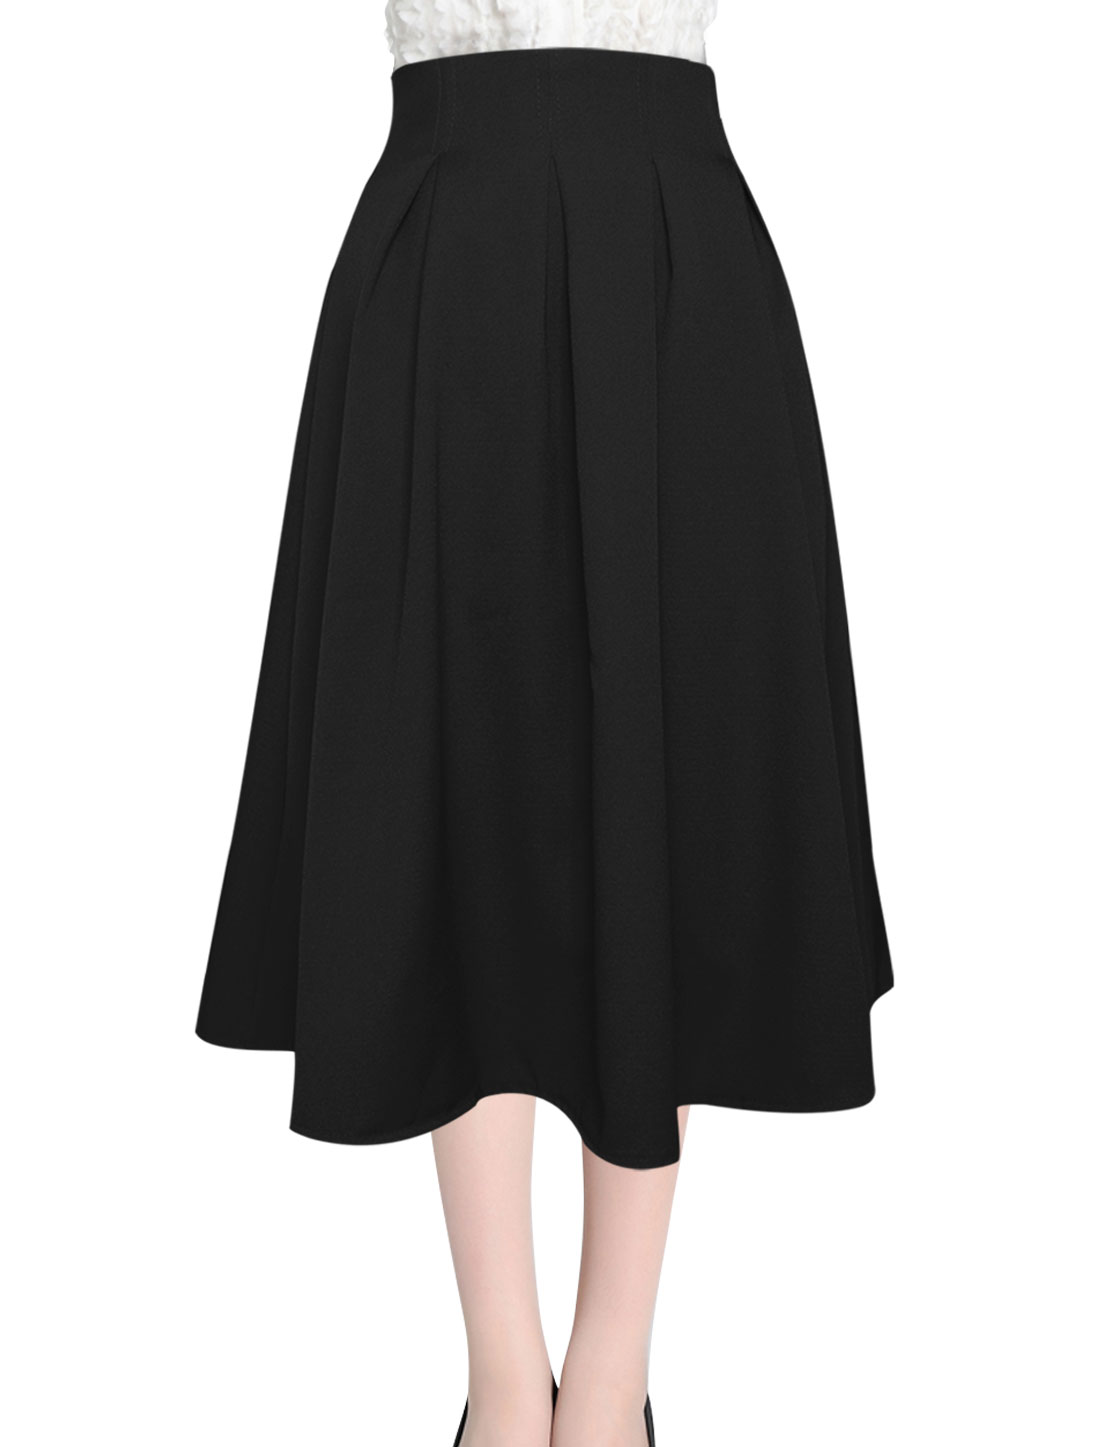 High Waist Pleated New Style Full Skirt for Women Black M